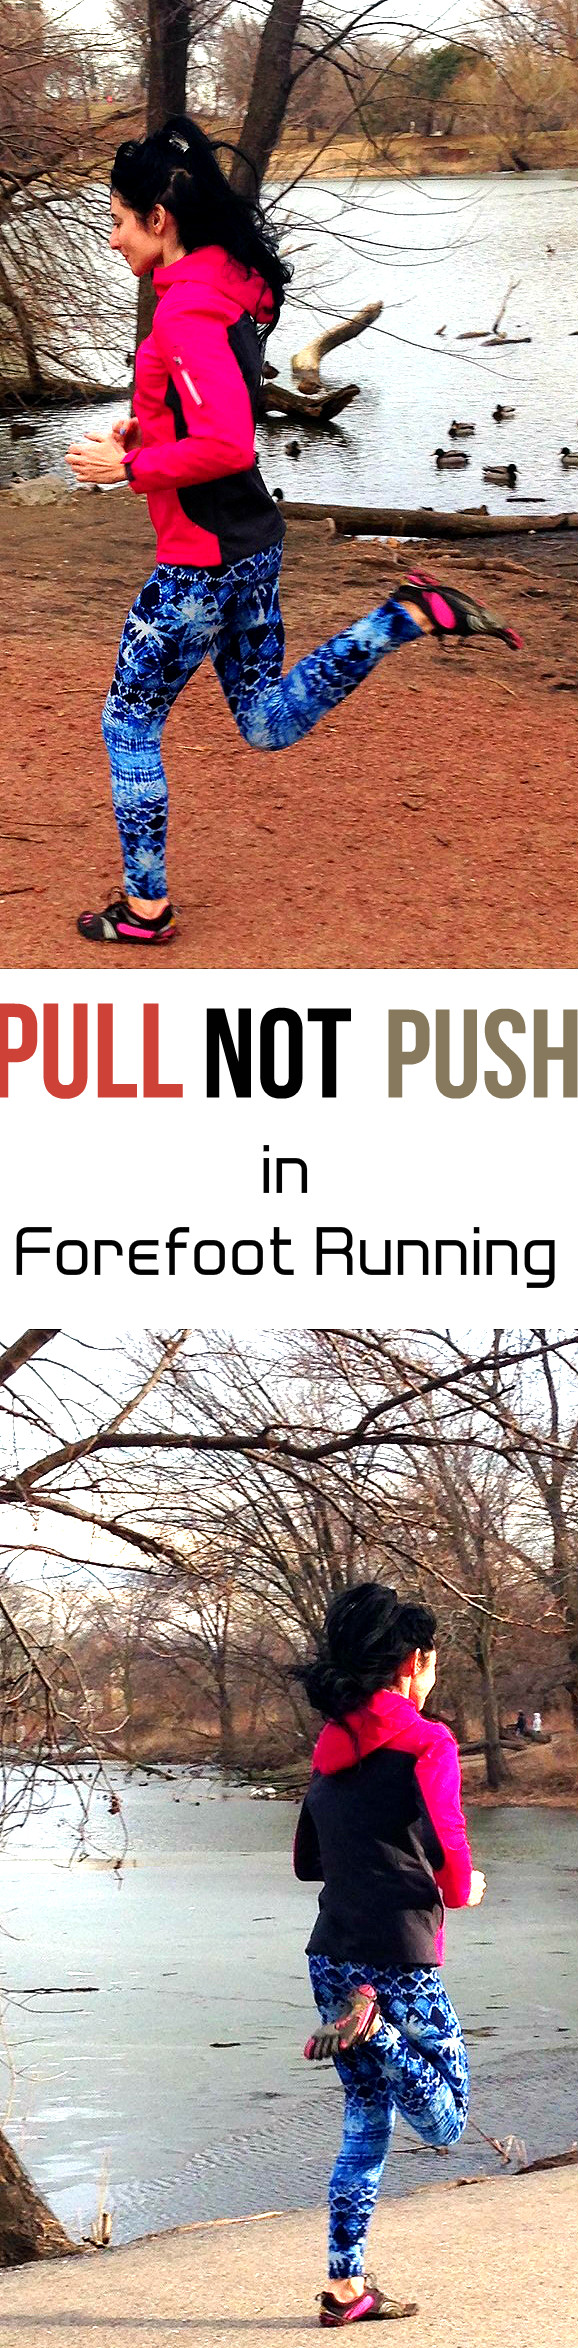 Why Pull And Not Push With Your Feet in Forefoot Running